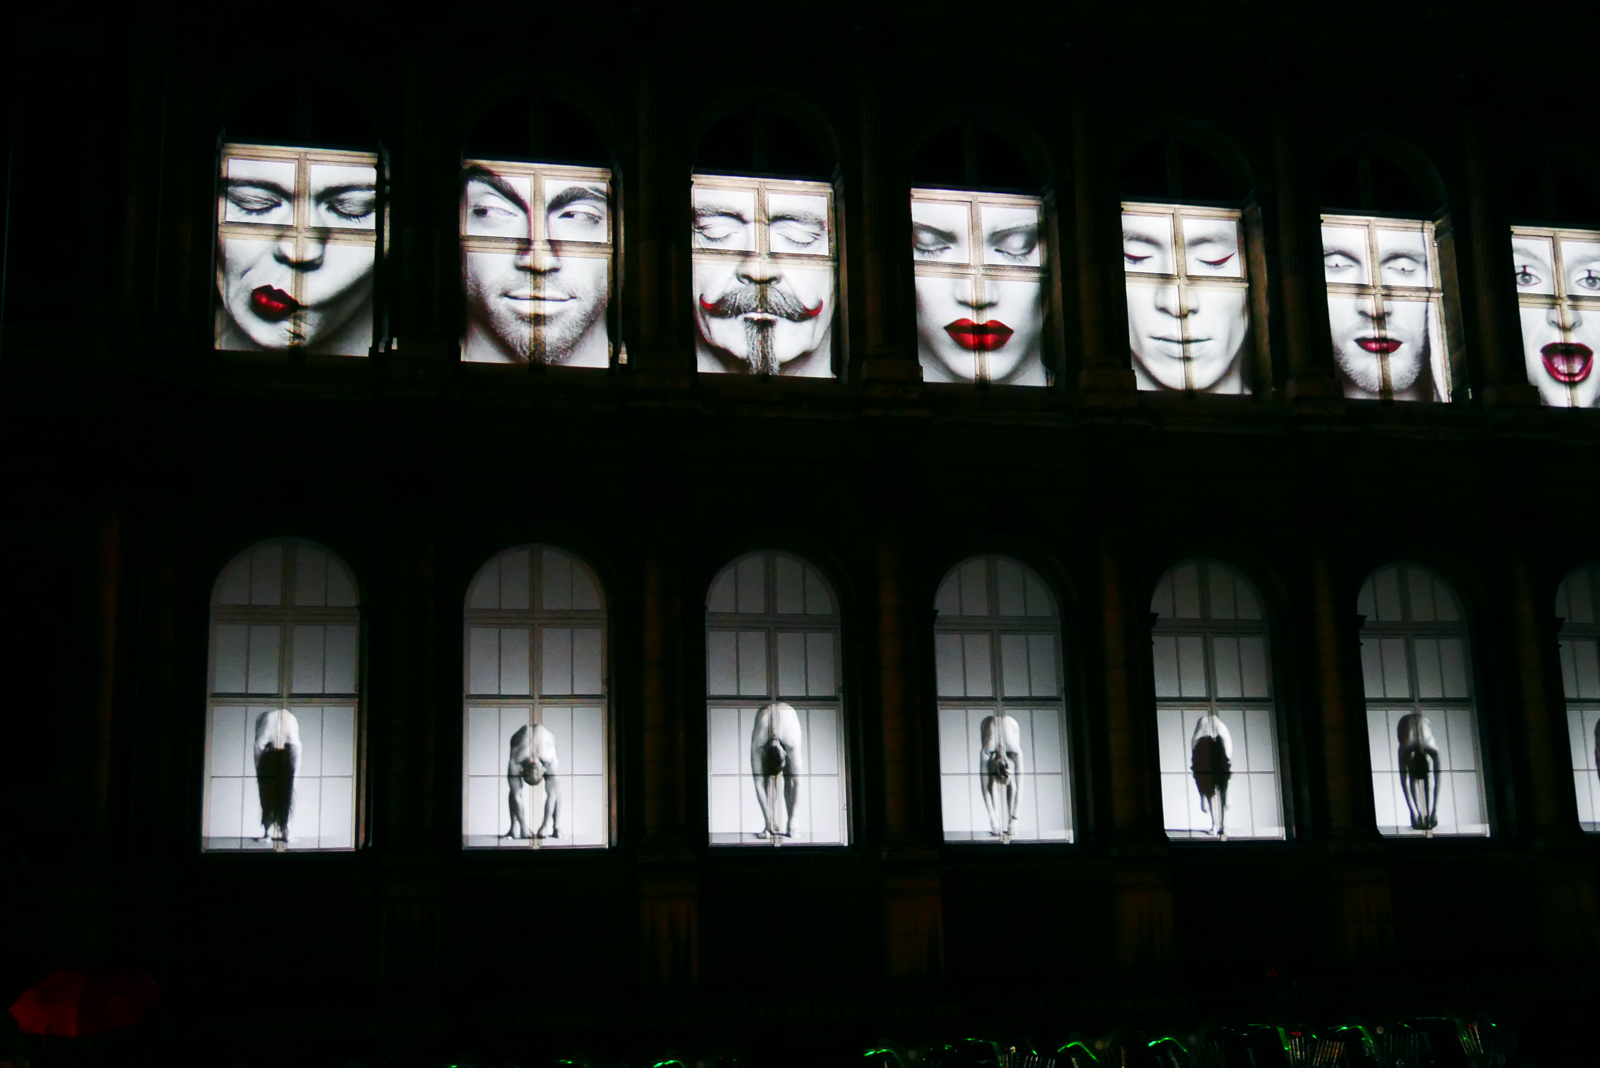 nuit-blanche-2016-paris-leveil-erwin-olaf-projection-video-hotel-de-ville-photo-usofparis-blog